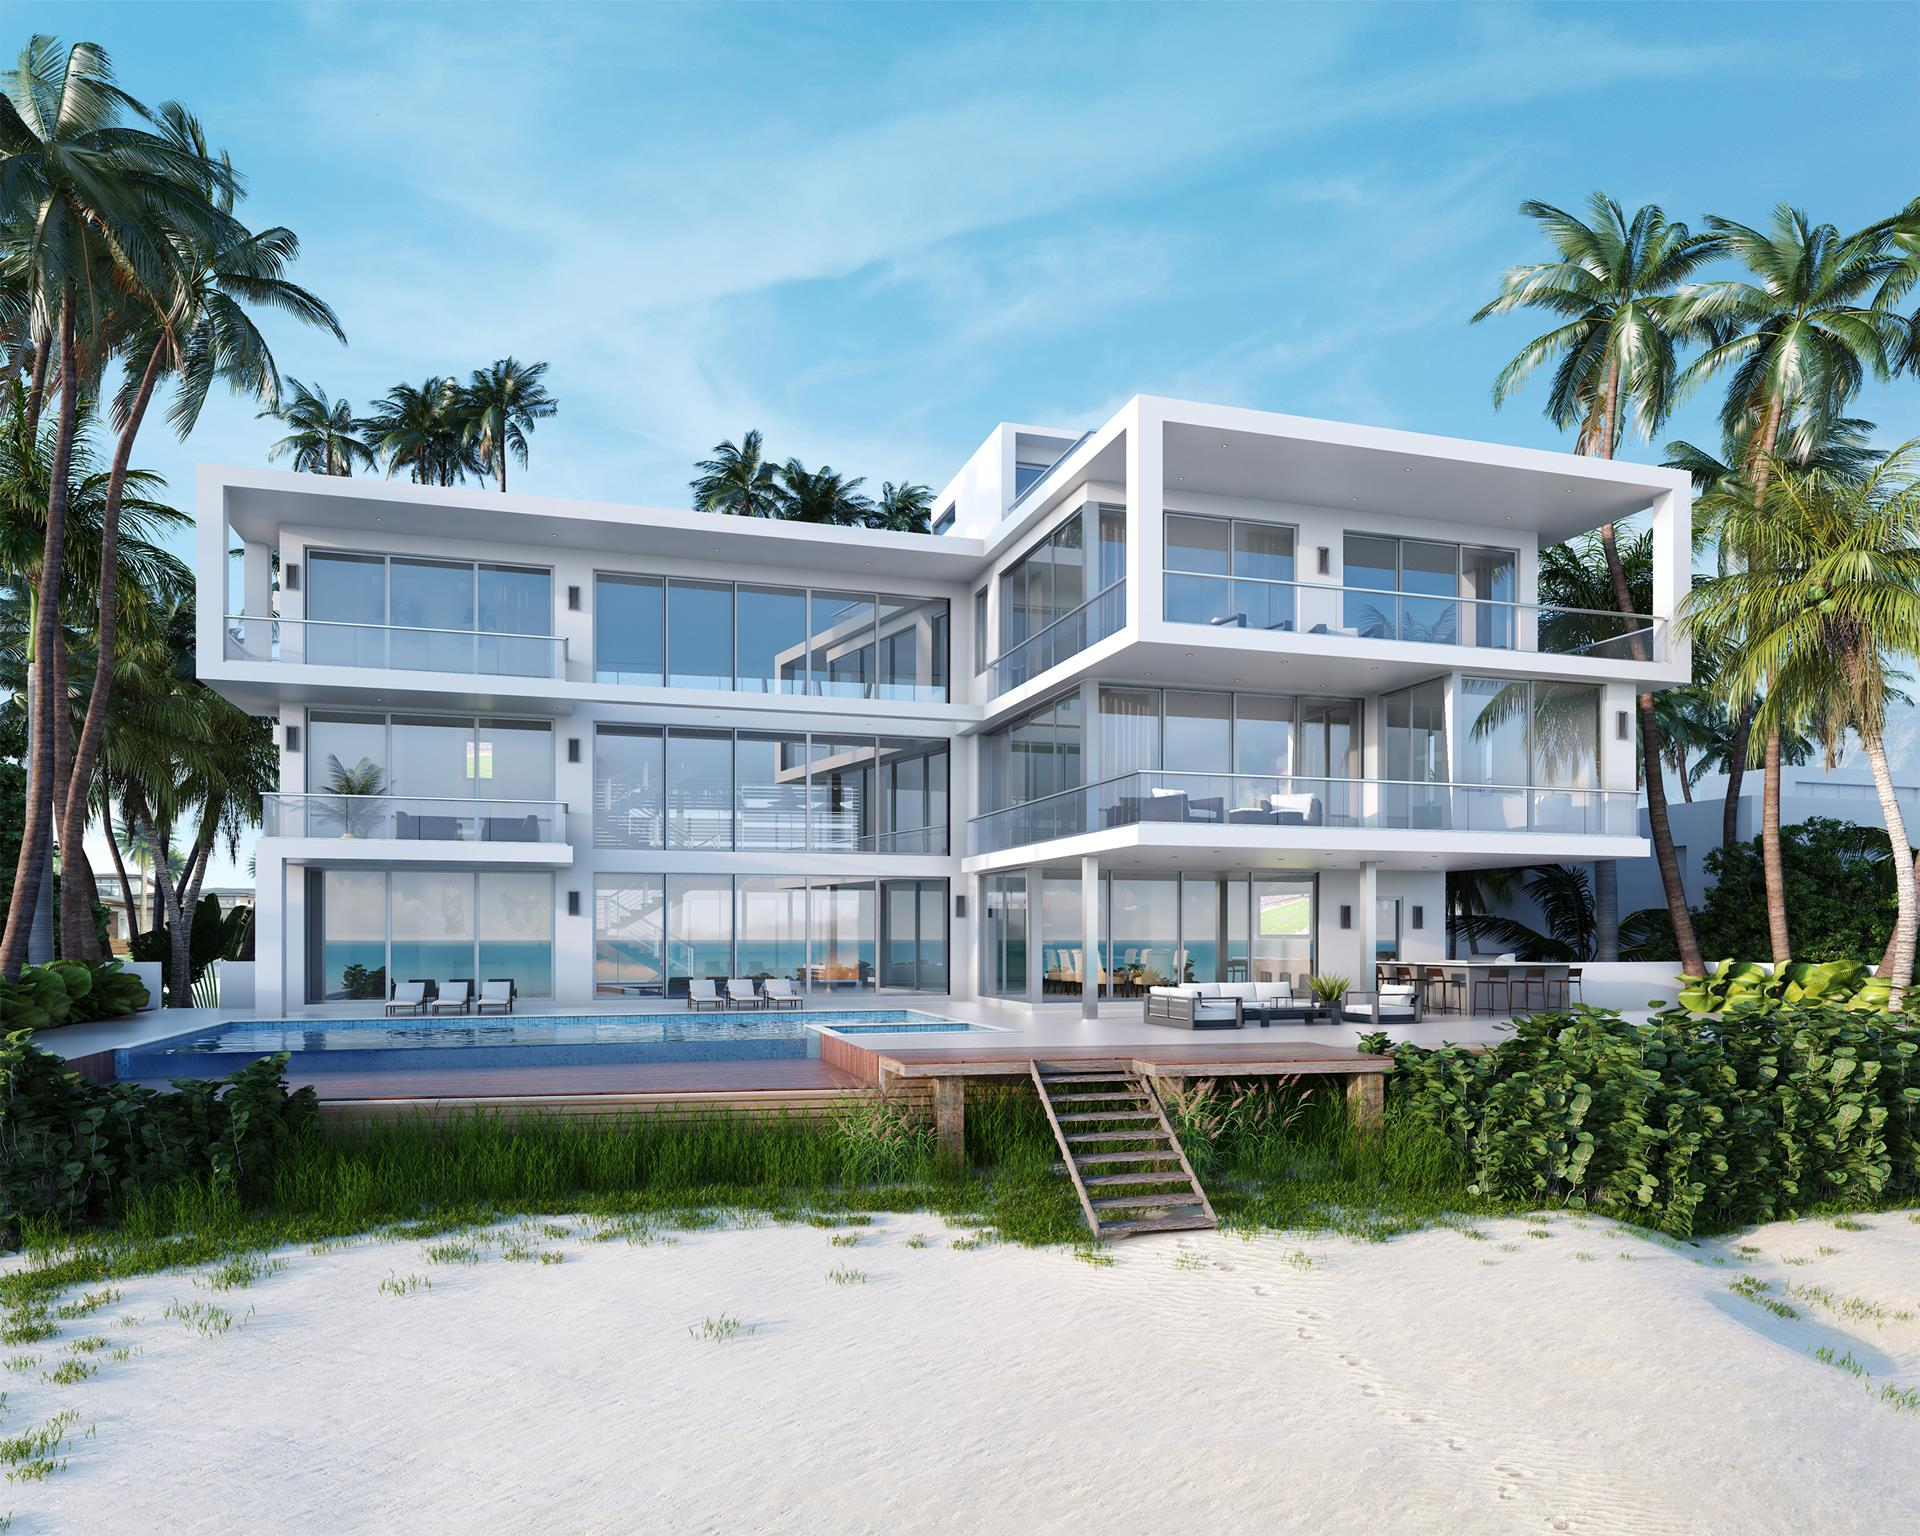 4005 S Ocean Blvd - Highland Beach, Florida